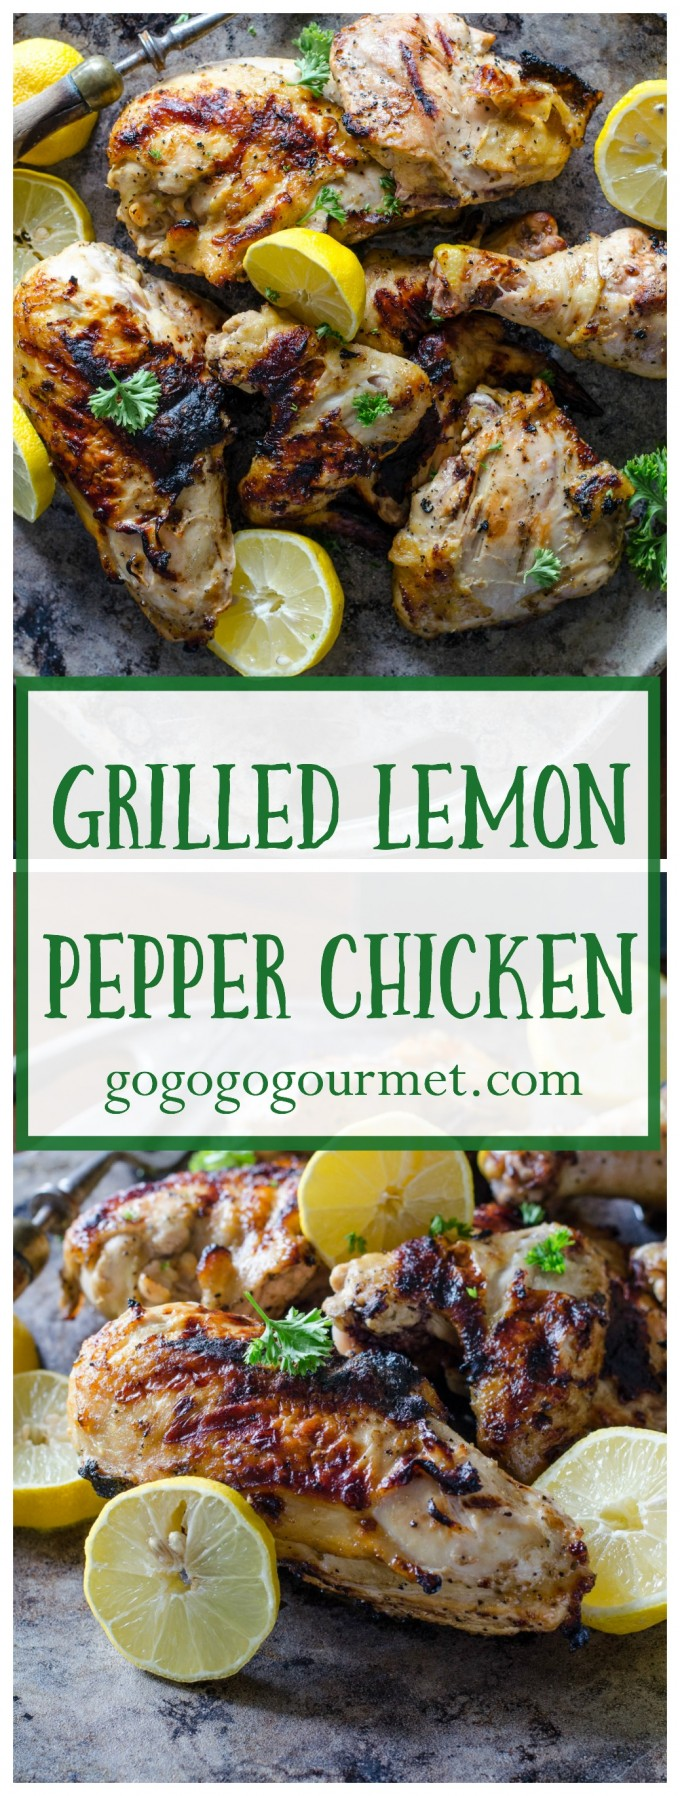 The marinade for this Lemon Pepper Chicken is super easy and makes the juiciest chicken ever! | Go Go Go Gourmet @gogogogourmet via @gogogogourmet